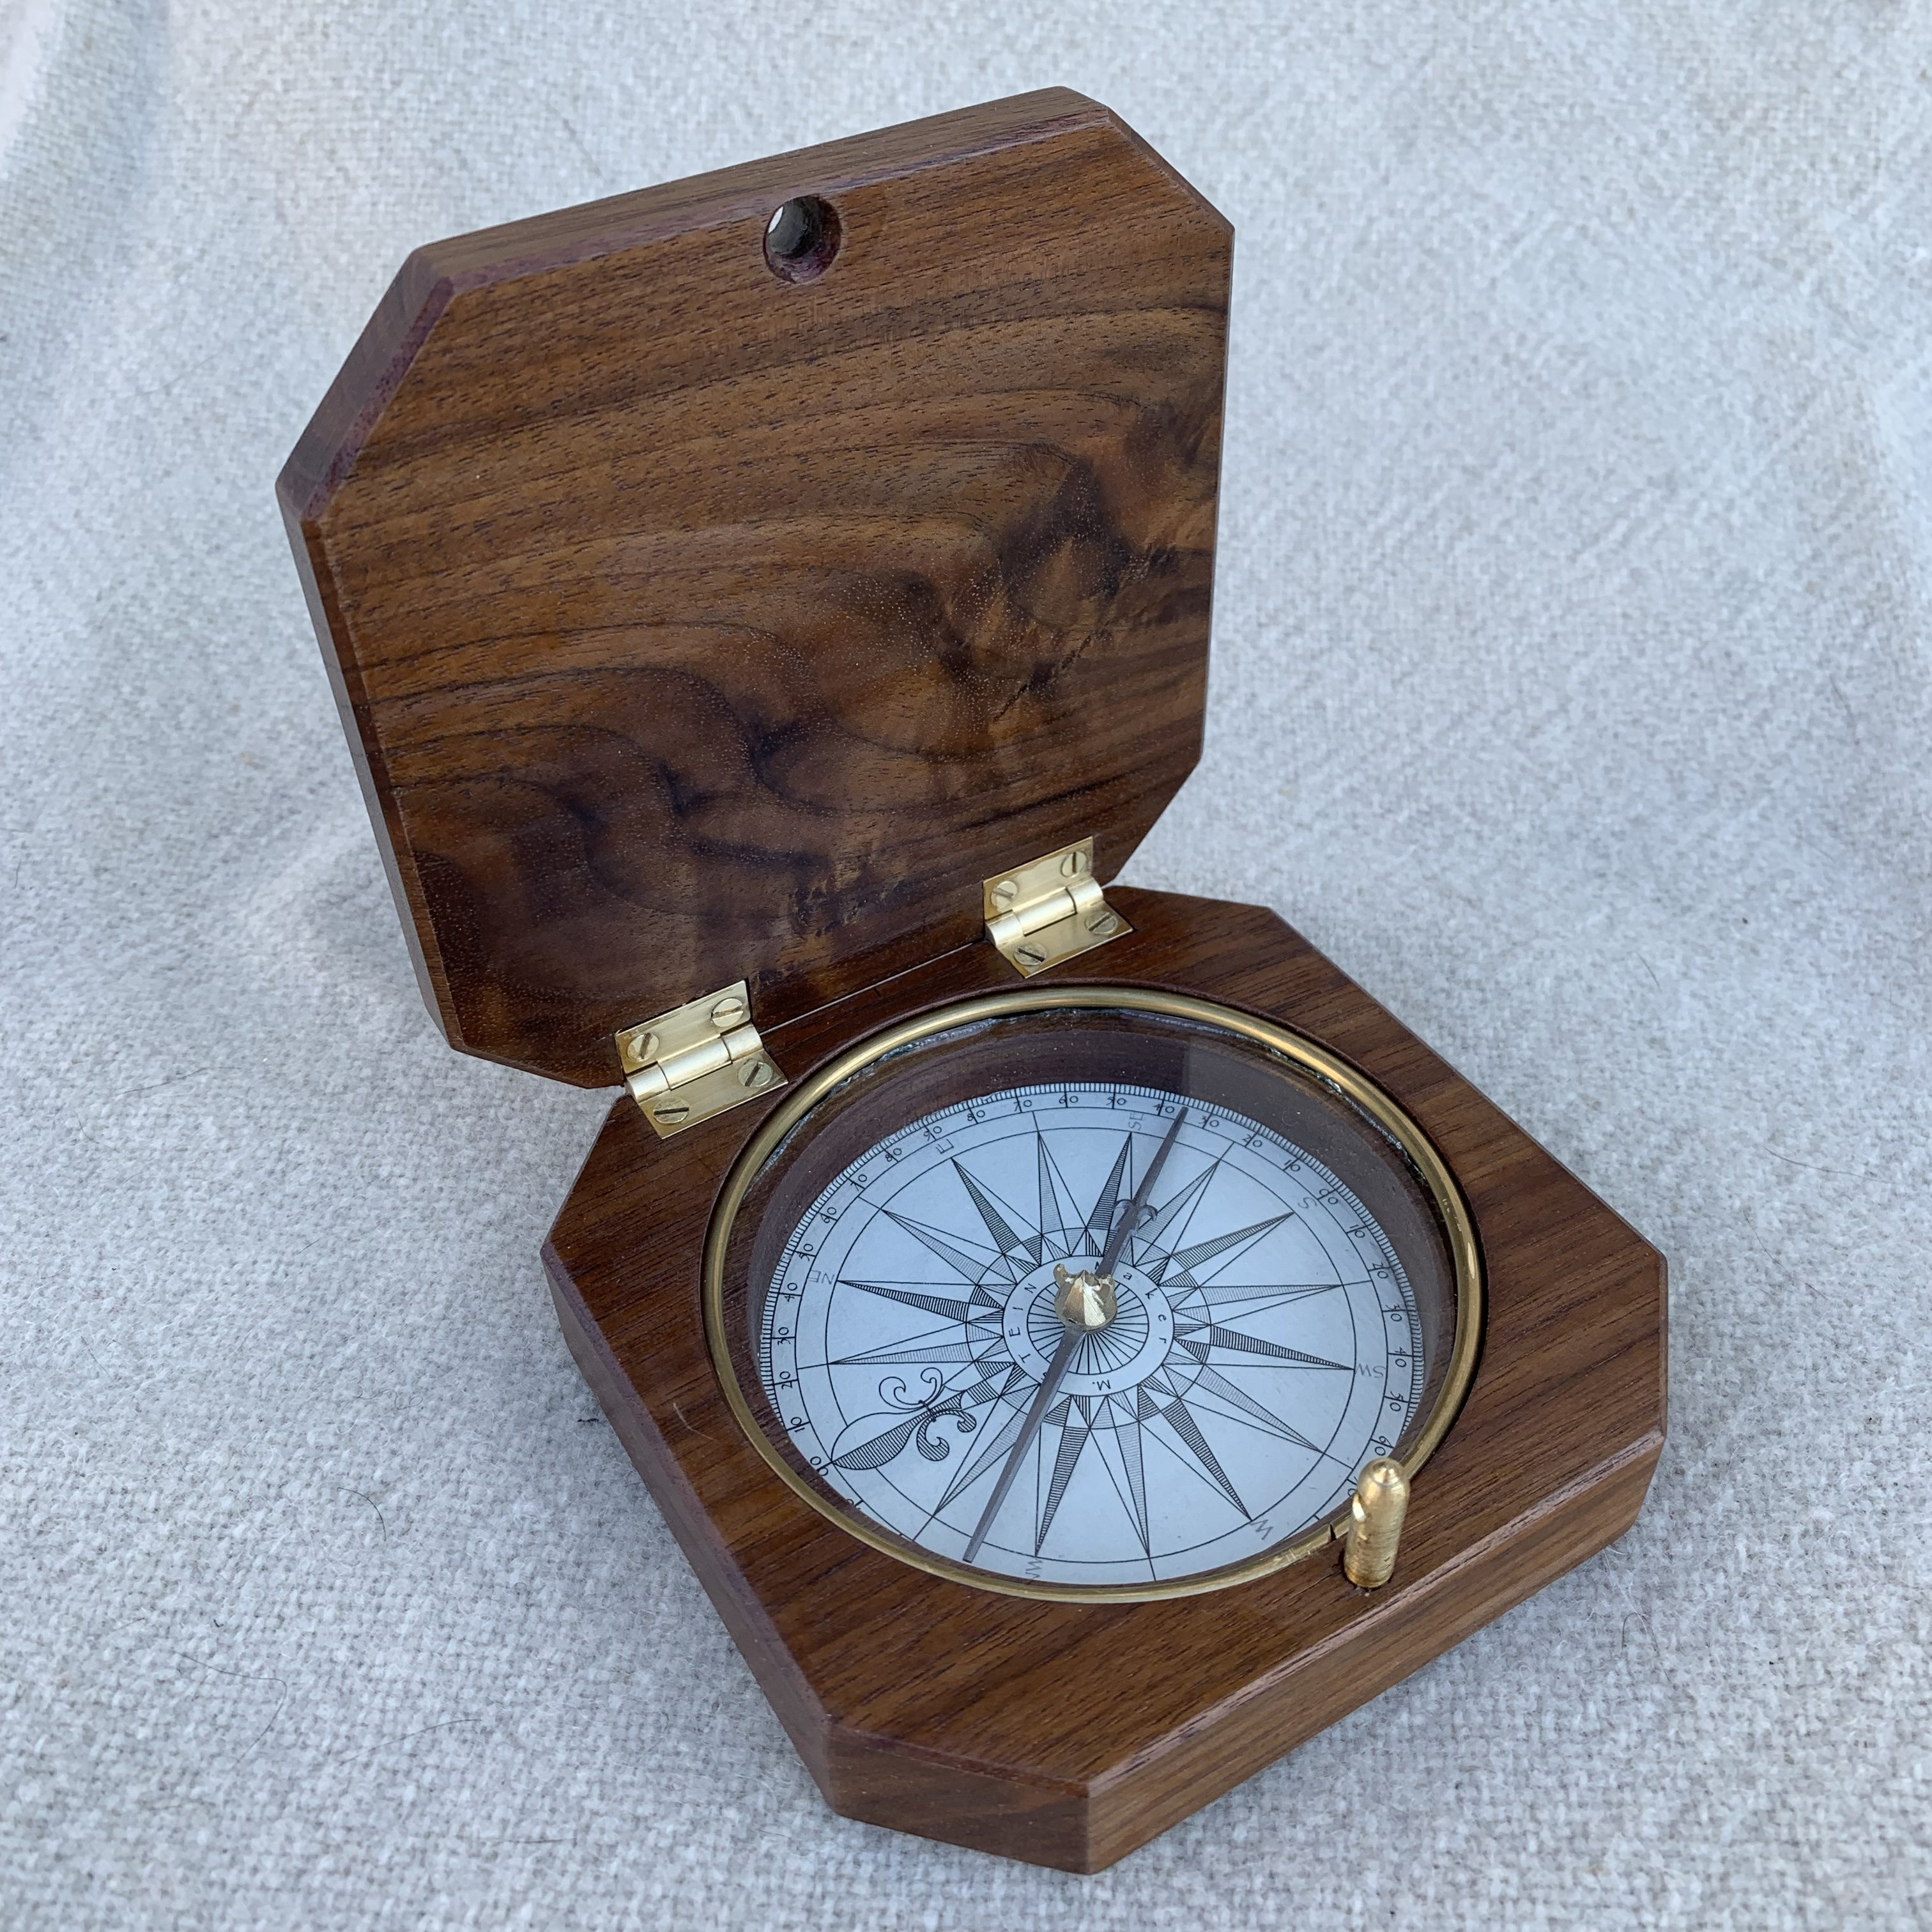 Cased compass